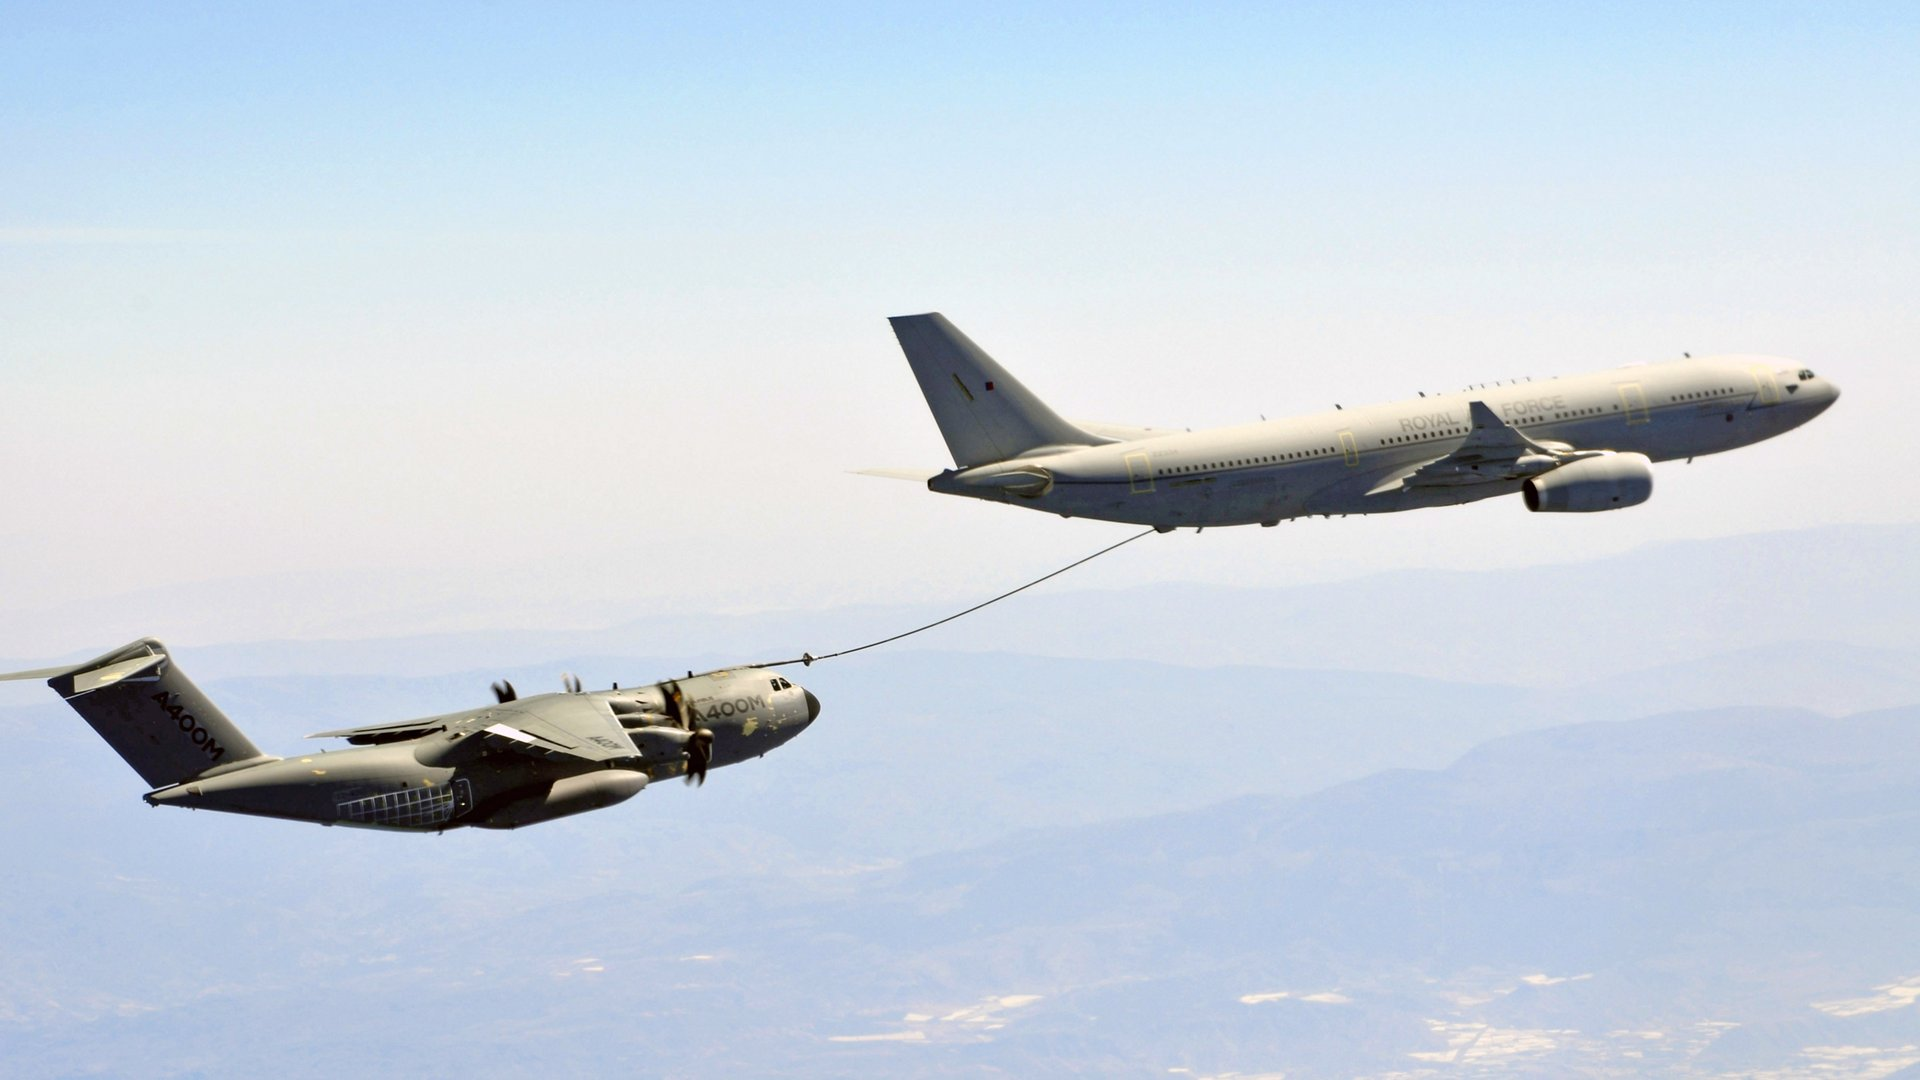 The Spanish National Institute for Aerospace Technology (INTA) has granted the Voyager Air-to-Air Refuelling (AAR) clearance for the A400M using the centreline hose and drogue system, known as the Fuselage Refuelling Unit (FRU).